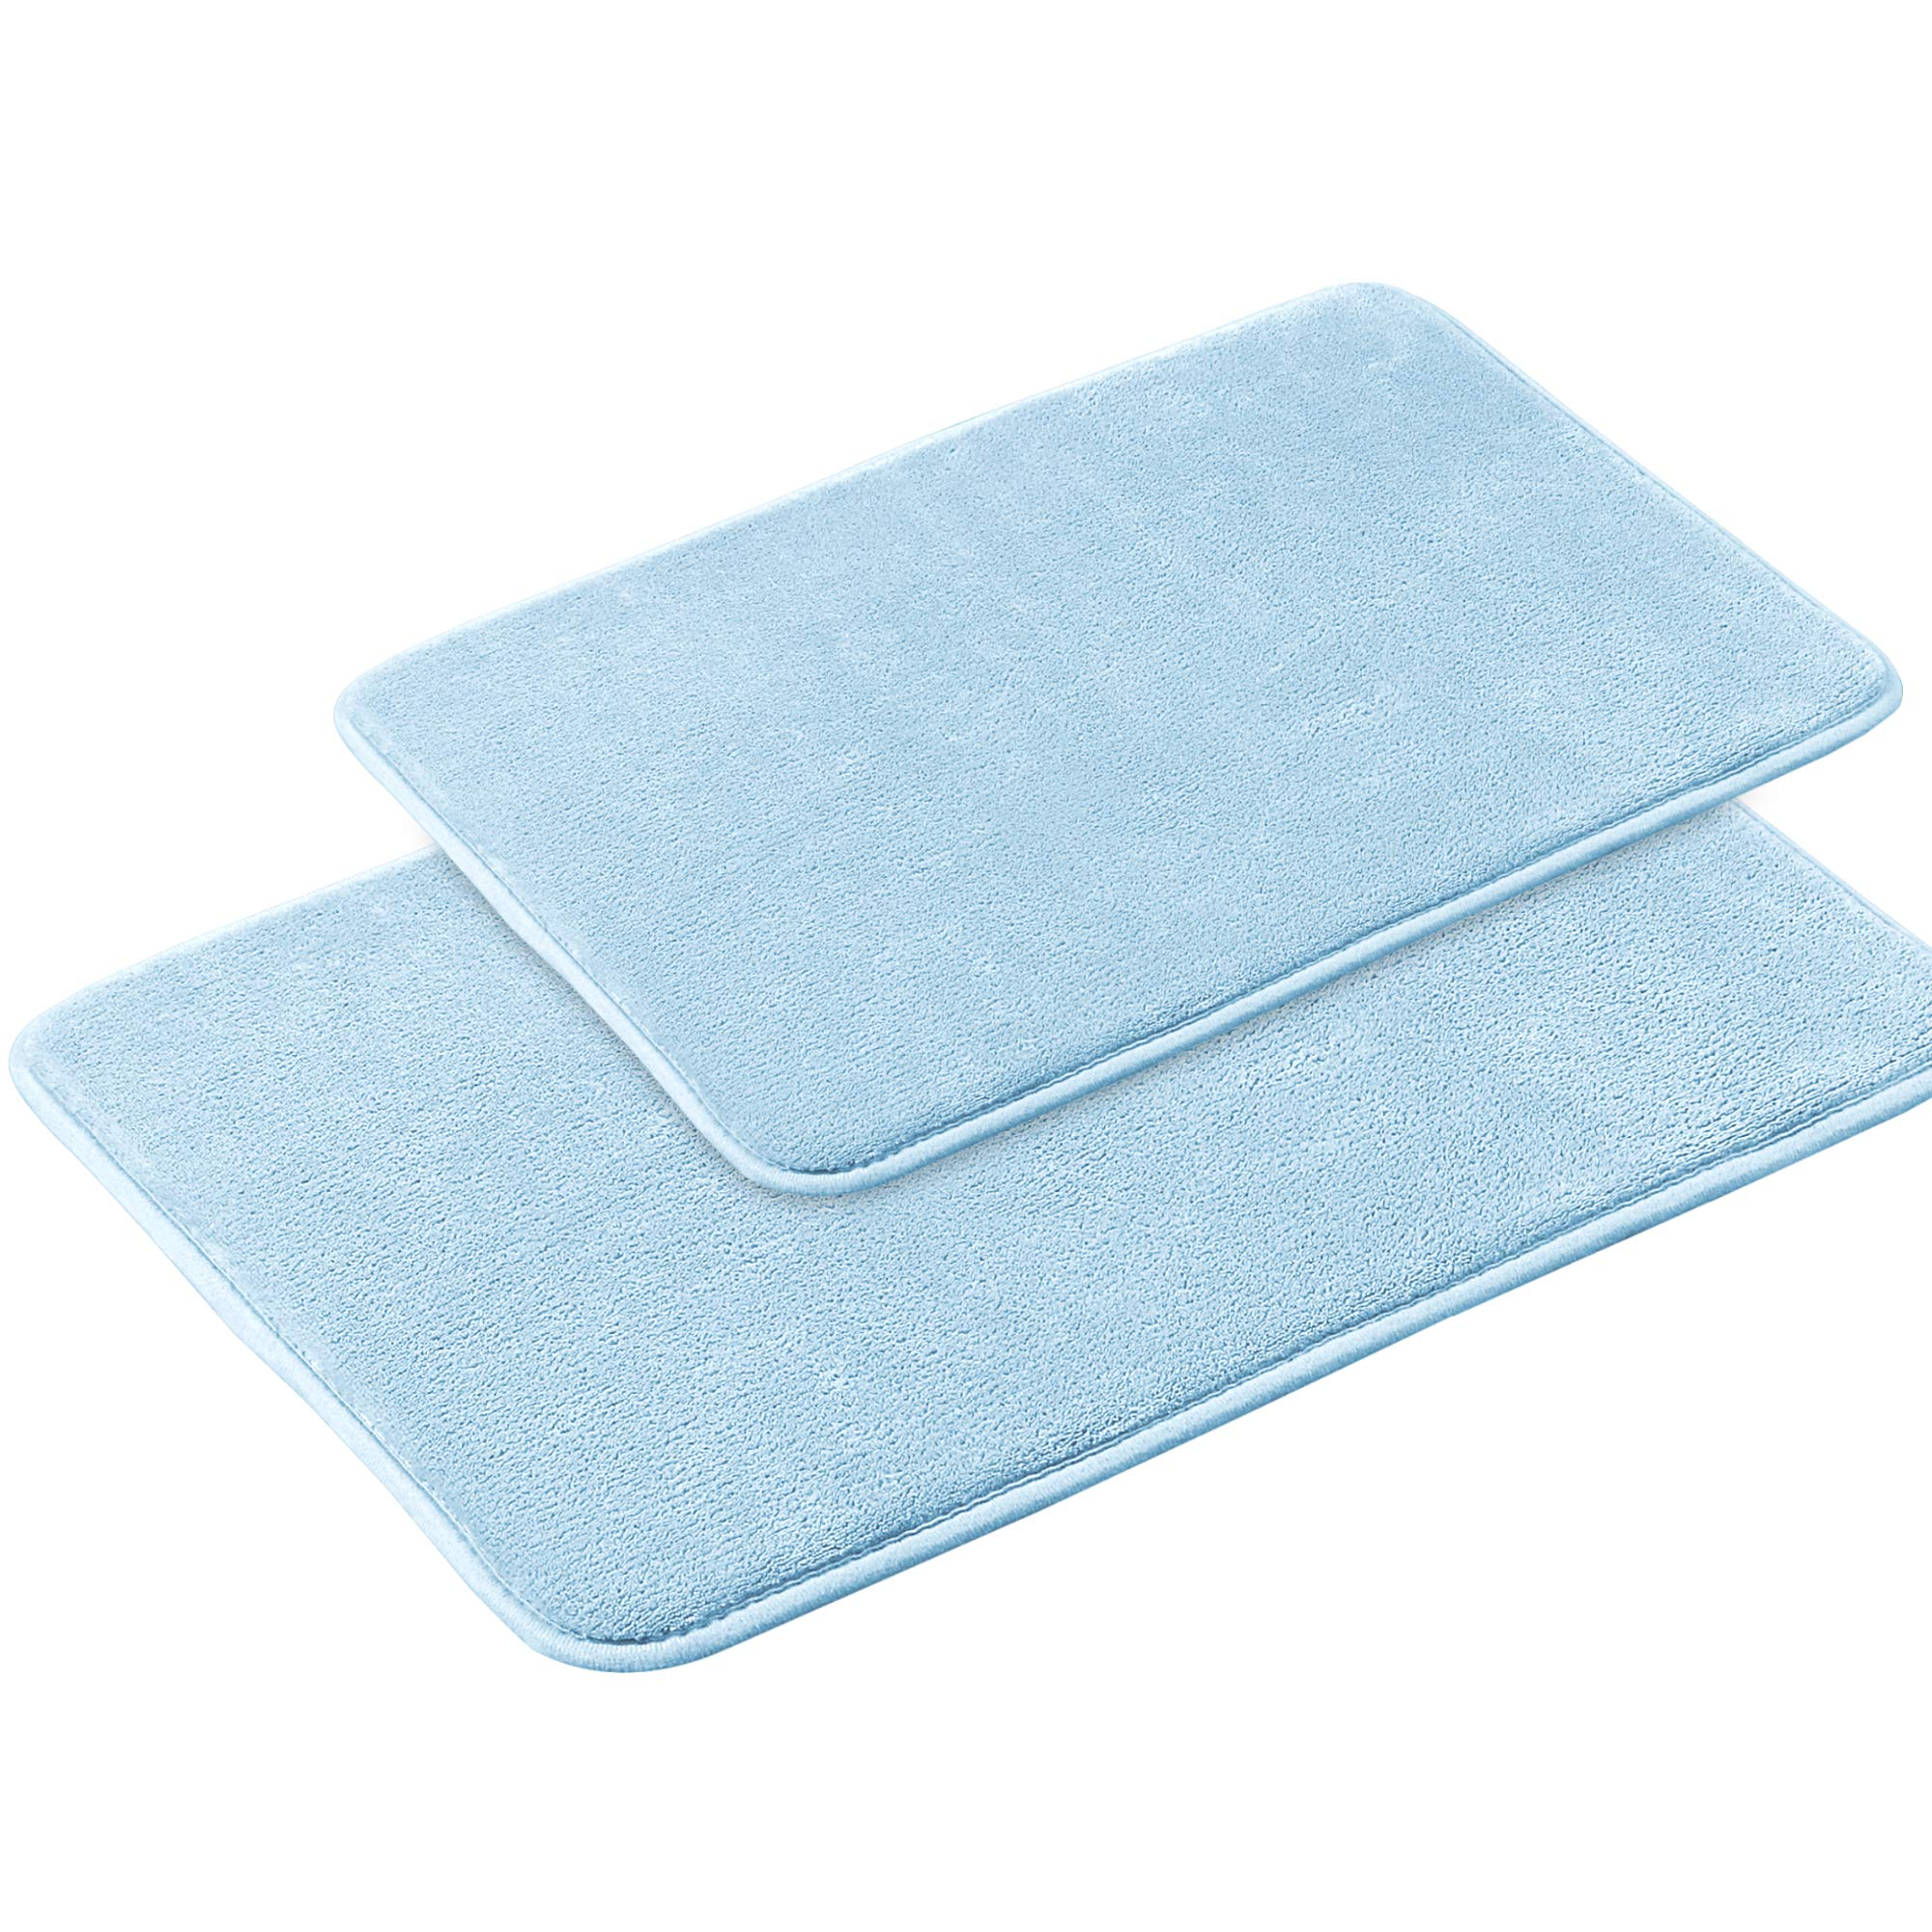 Memory Foam Bathroom Rug Set Ultra Soft Flannel Floor Mats Tufted Bath Rug with Non-Slip Backing Microfiber Door Mat for Kitchen/Entryway/Living Room (Pack 2-17'' x 24''/ 20'' x 32''- Sky Blue) by Flamingo P (Image #1)